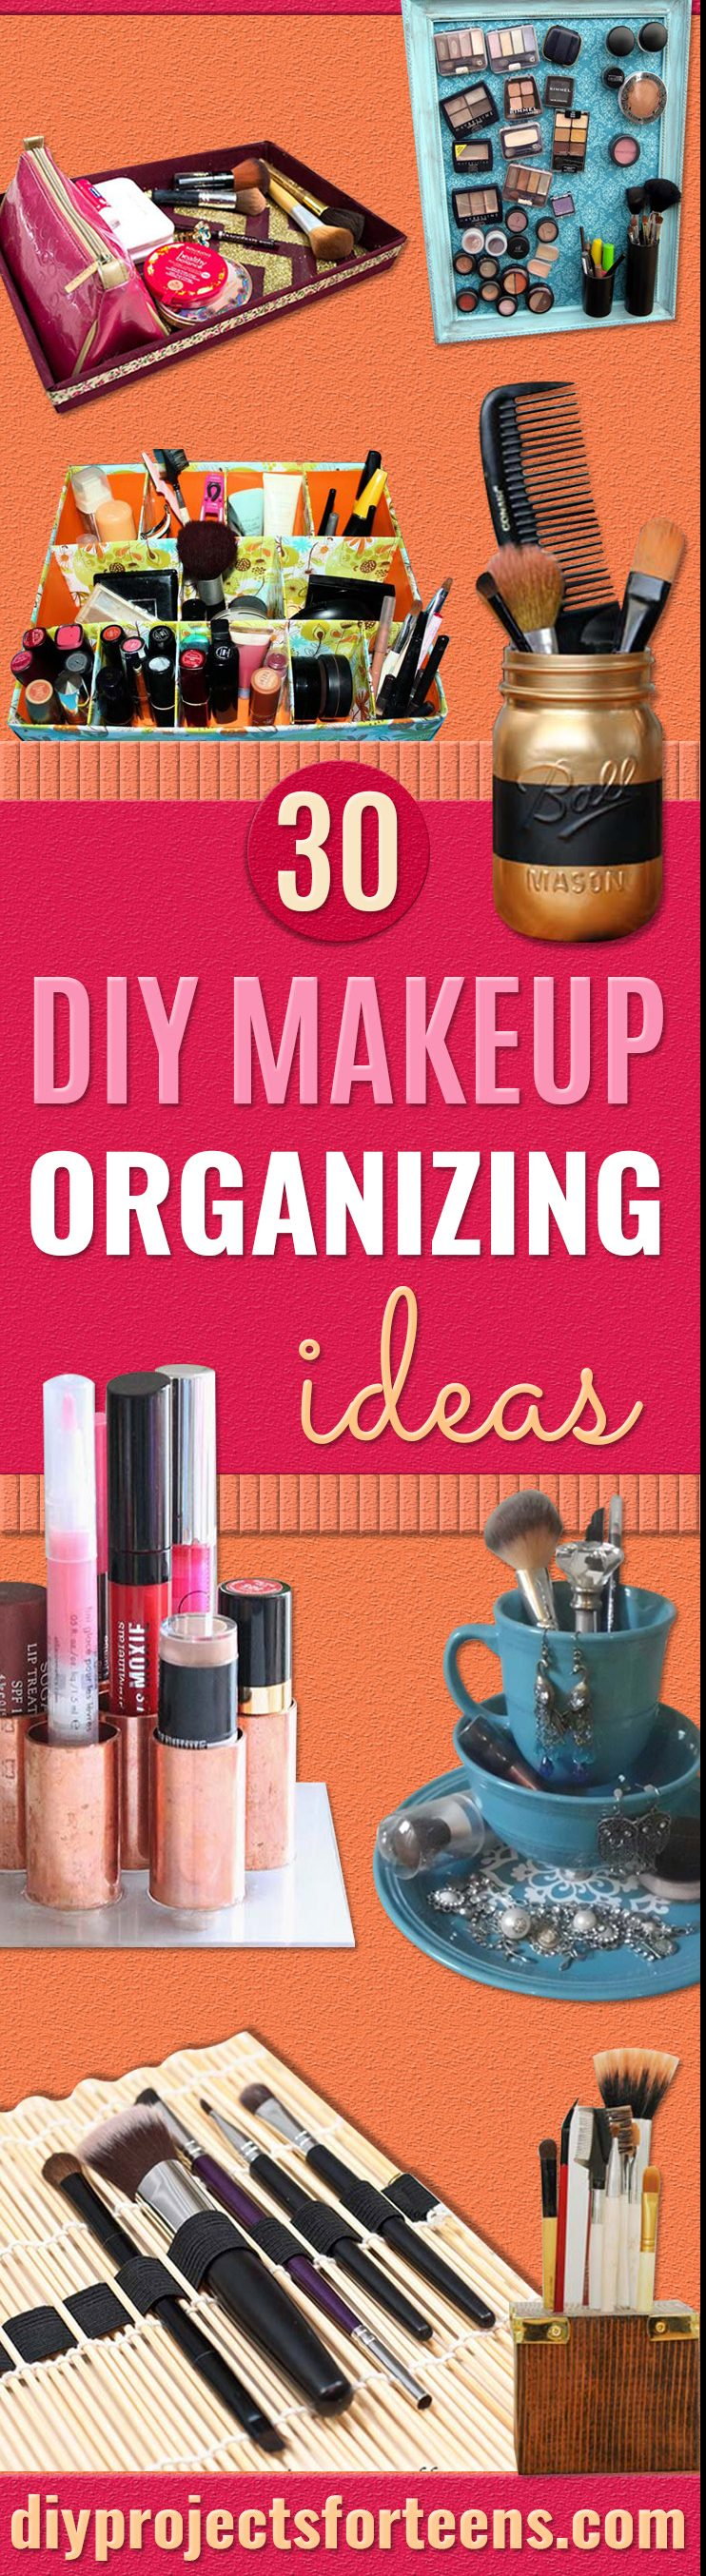 DIY Makeup Organizing Ideas - Projects for Makeup Drawer, Box, Storage, Jars and Wall Displays - Cheap Dollar Tree Ideas with Cardboard and Shoebox - Wood Organizers, Tray and Travel Carriers